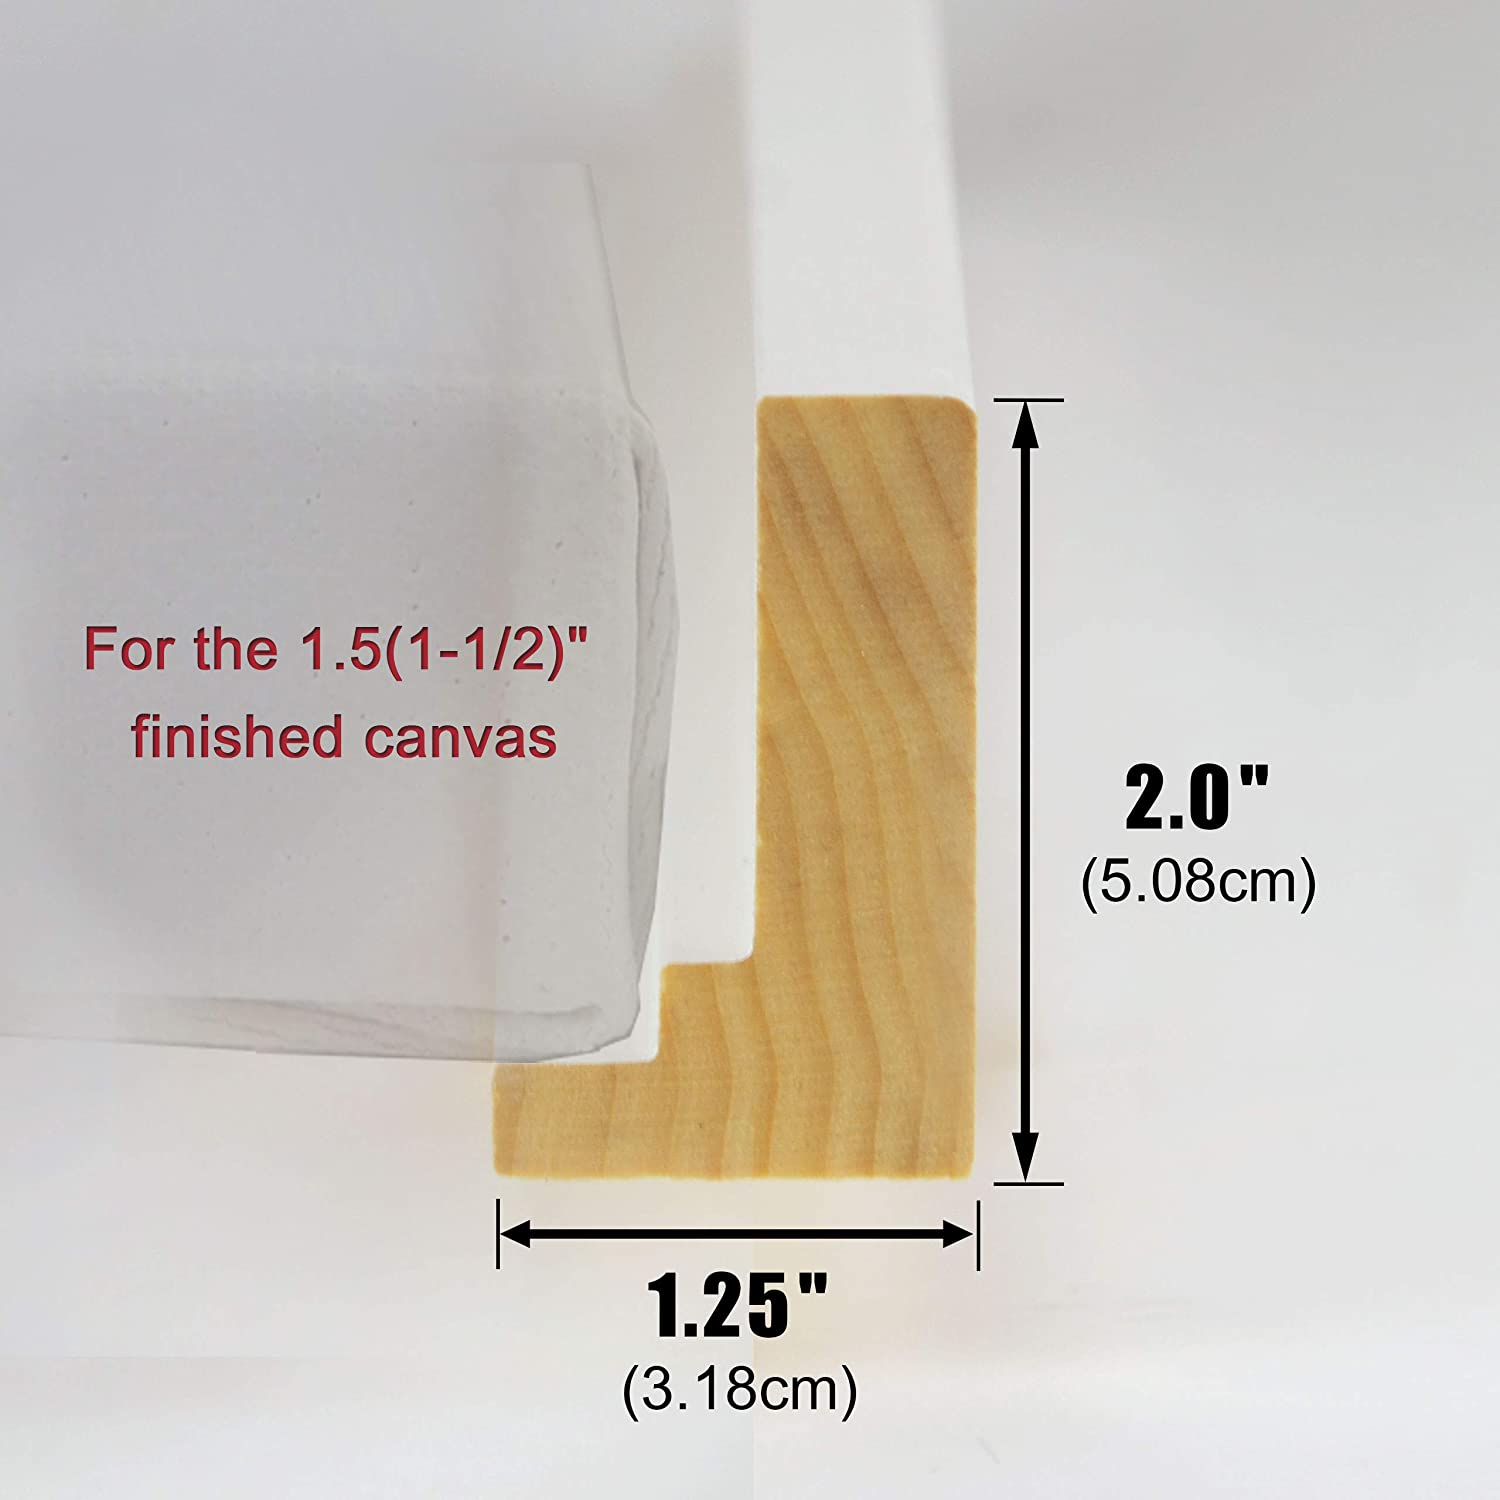 5 to 72 in Length and 2.0 in Height for 1.5 Canvas : Art Floating Display 05X07 1Set DIY Floater Picture Frame//Wood /& Dark Brown